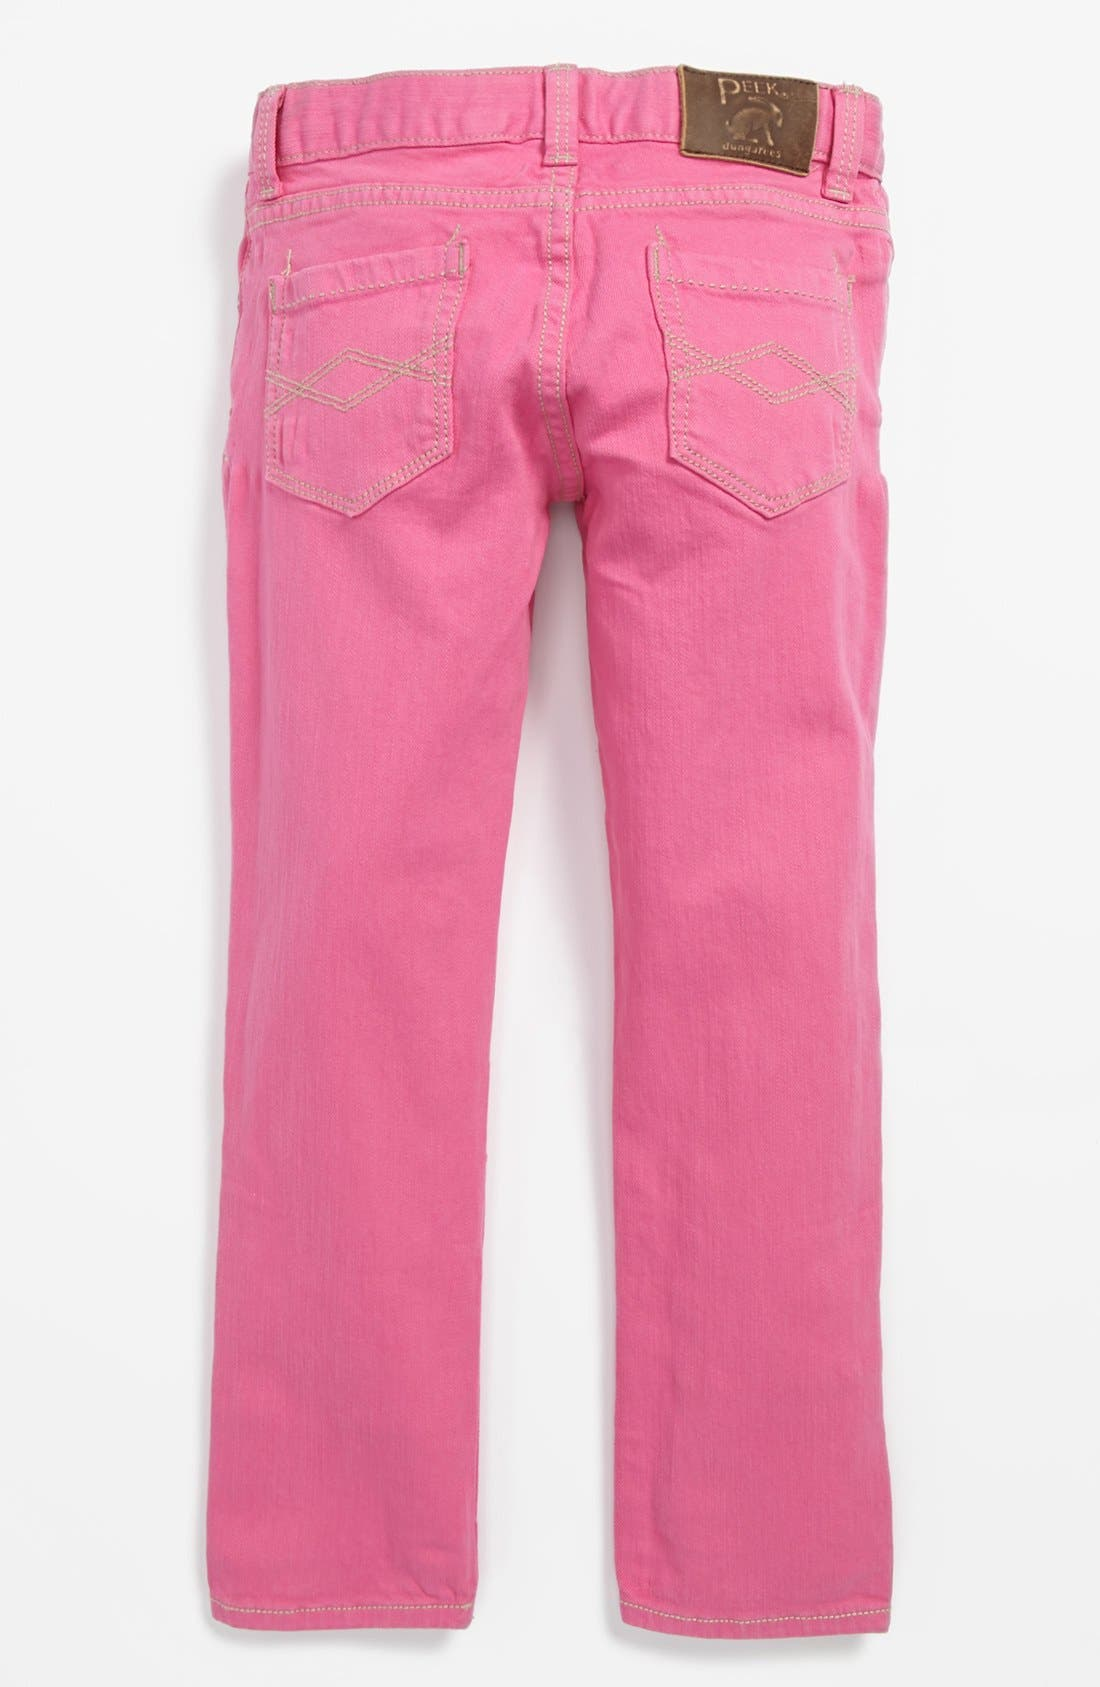 Main Image - Peek 'Dylan' Jeans (Toddler Girls, Little Girls & Big Girls)